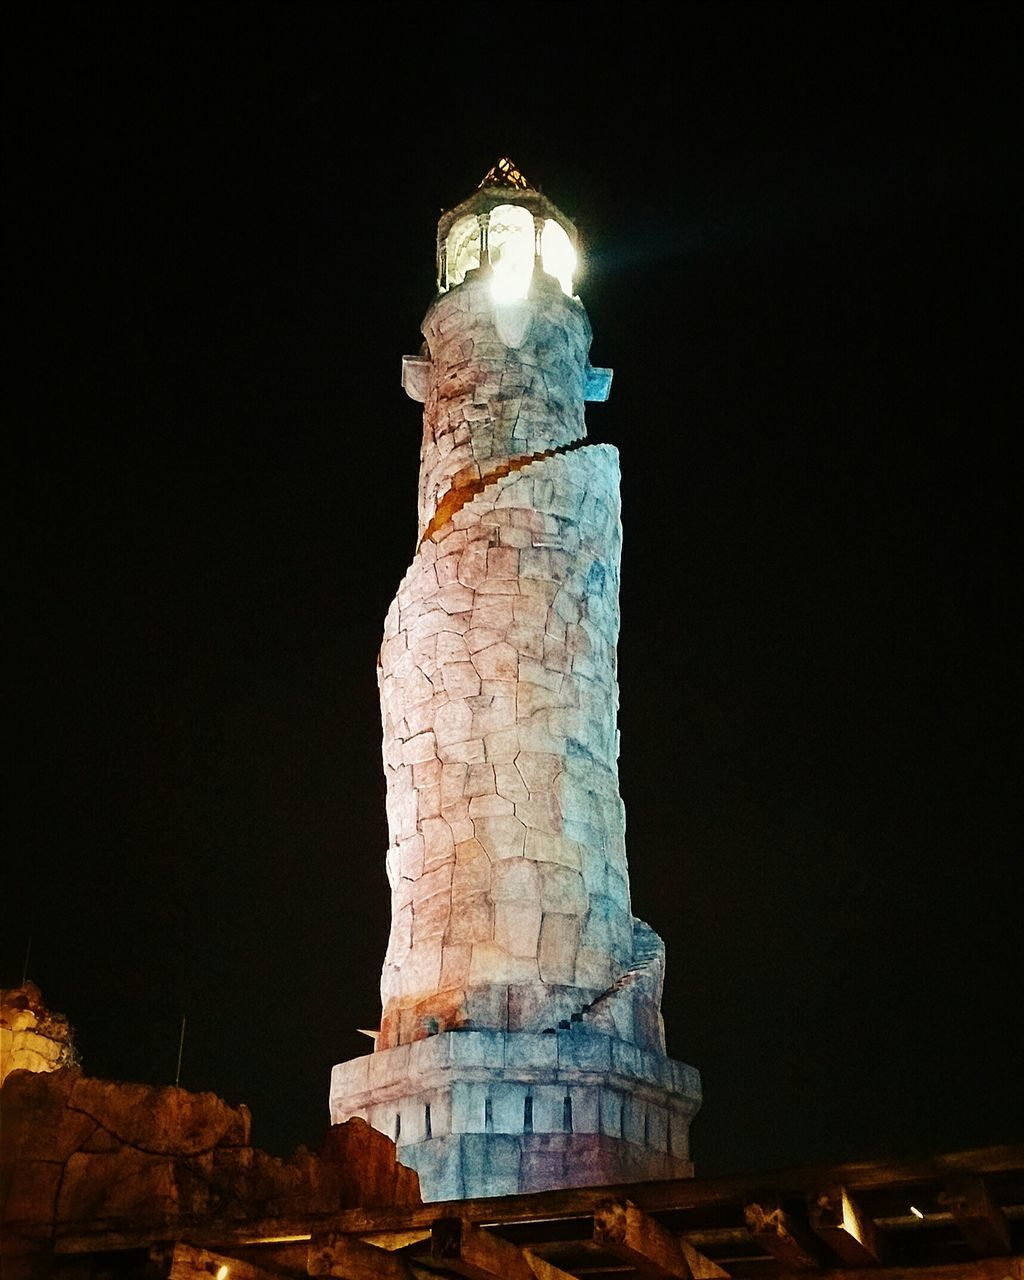 night, statue, low angle view, no people, illuminated, sculpture, history, architectural column, old ruin, travel destinations, built structure, architecture, outdoors, sky, ancient civilization, close-up